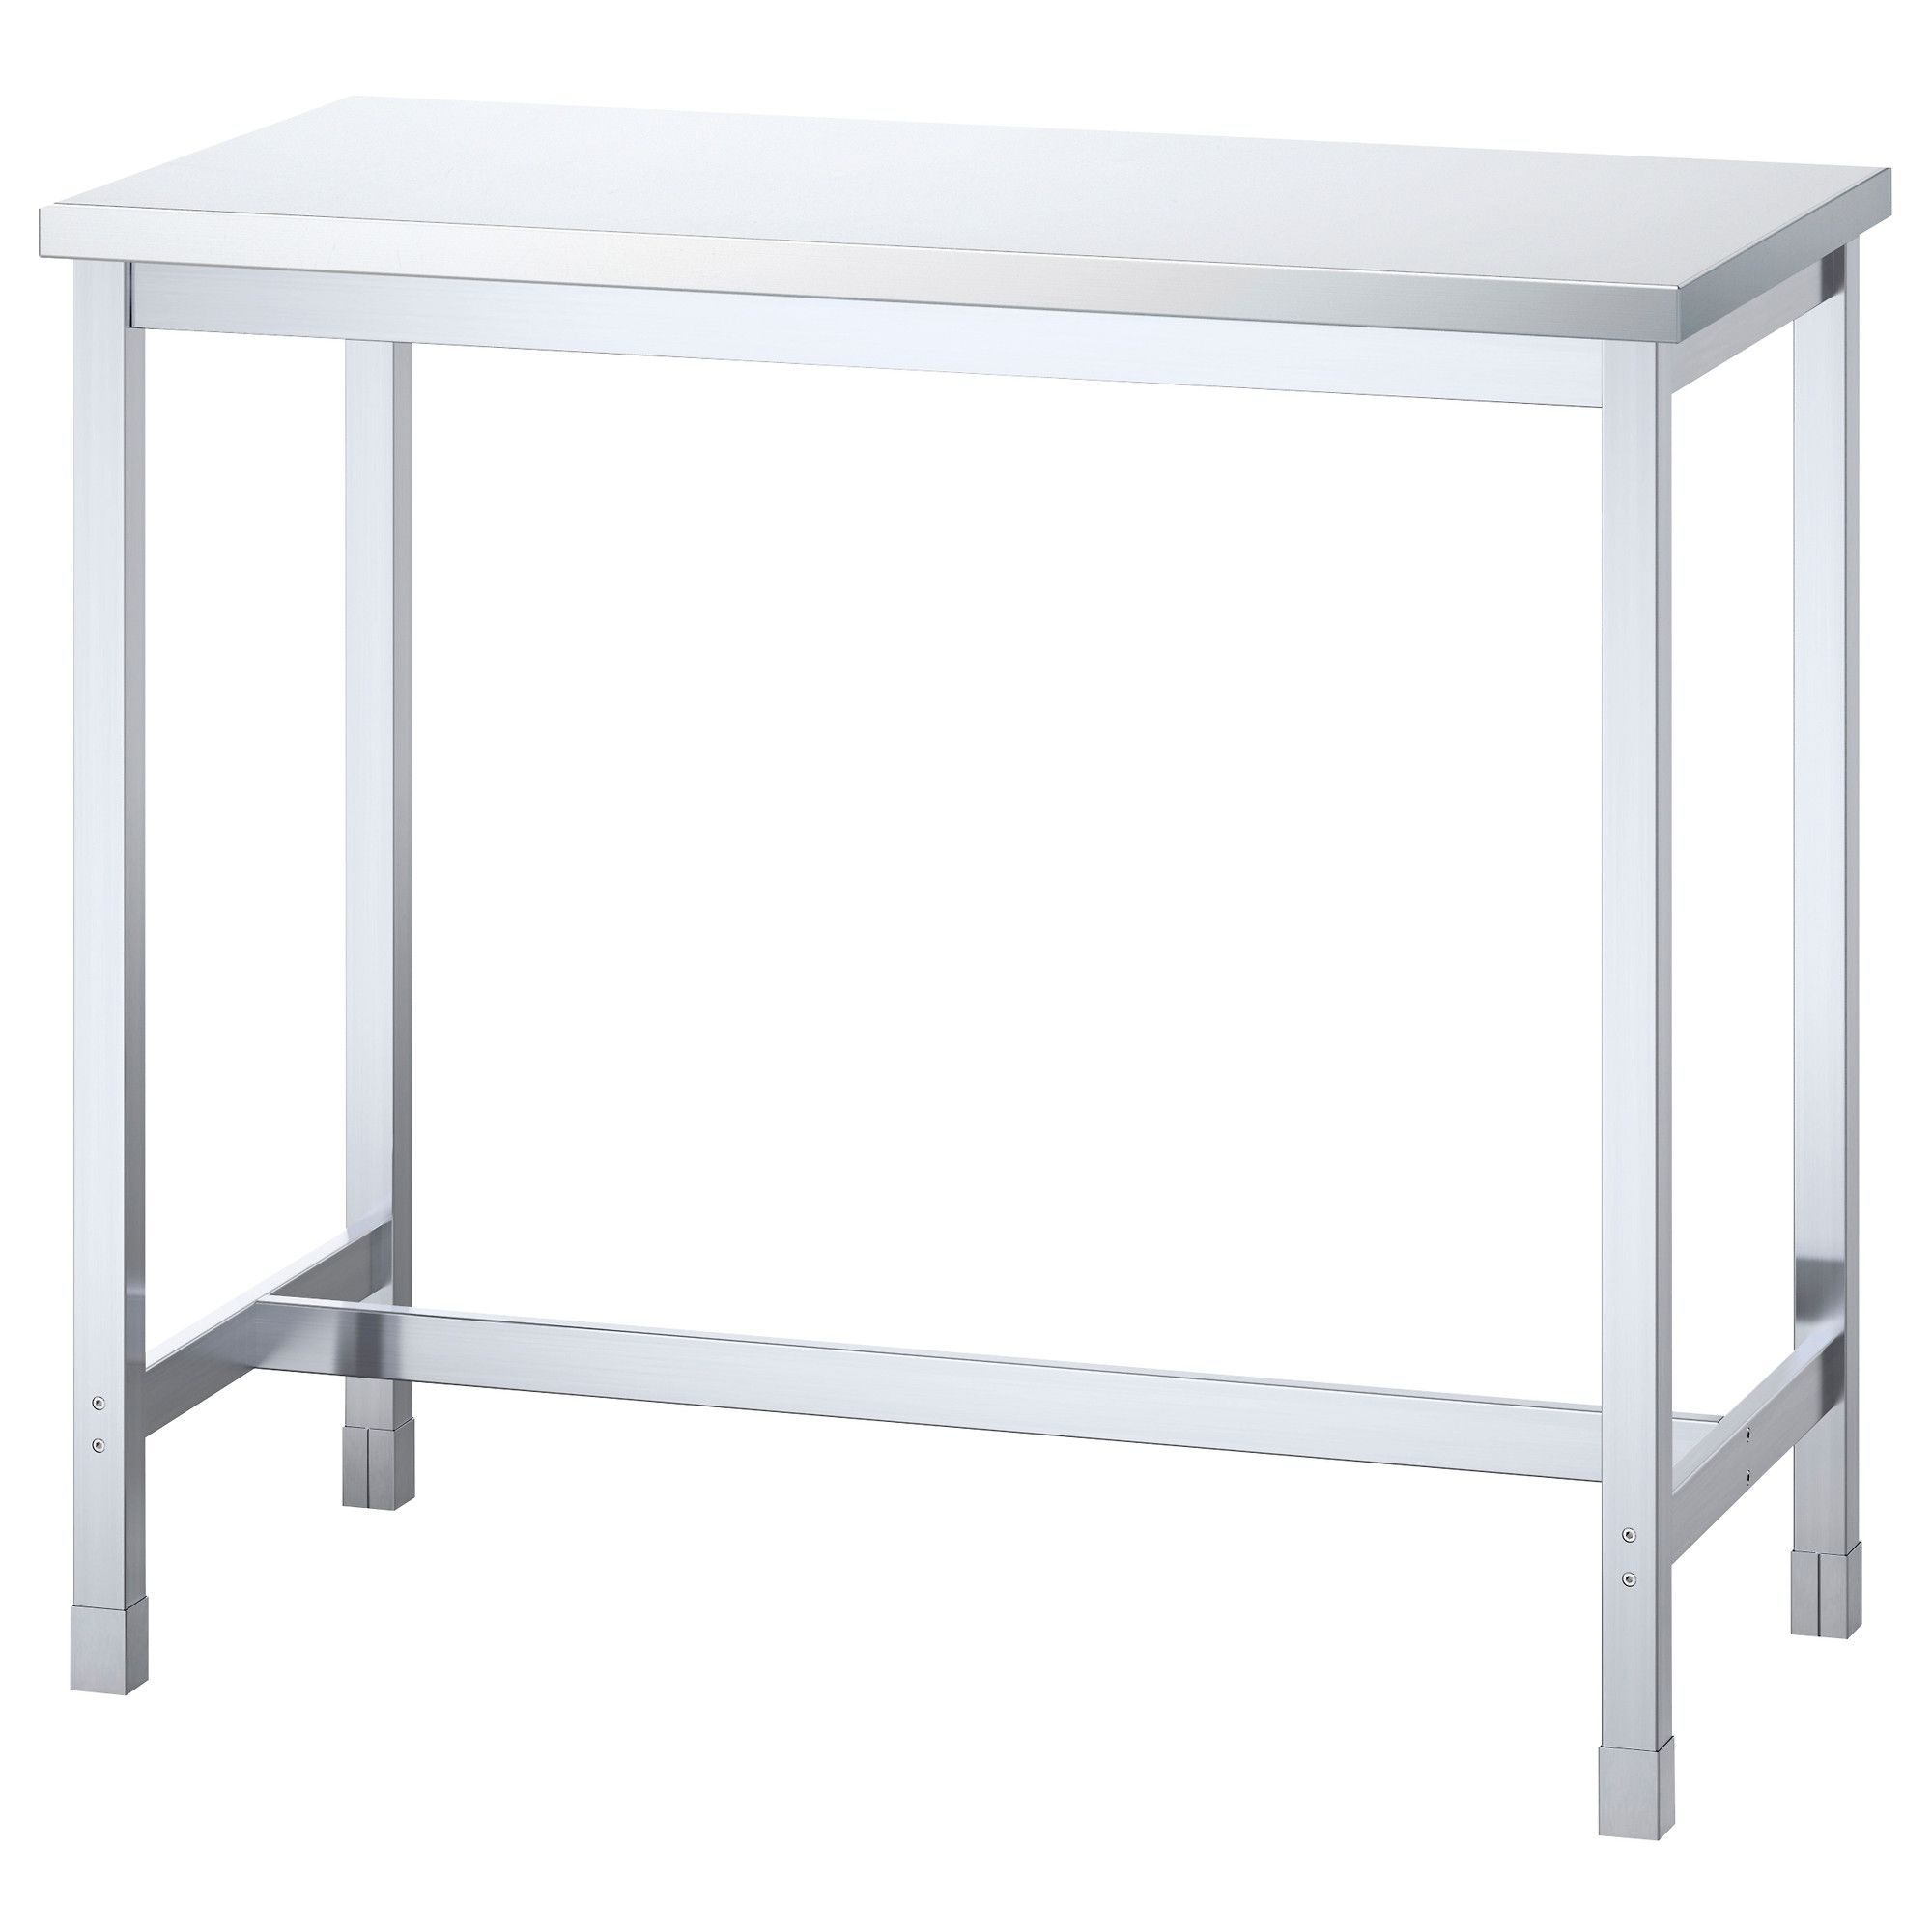 perfect utby bar table stainless steel ikea for danus desk. Black Bedroom Furniture Sets. Home Design Ideas